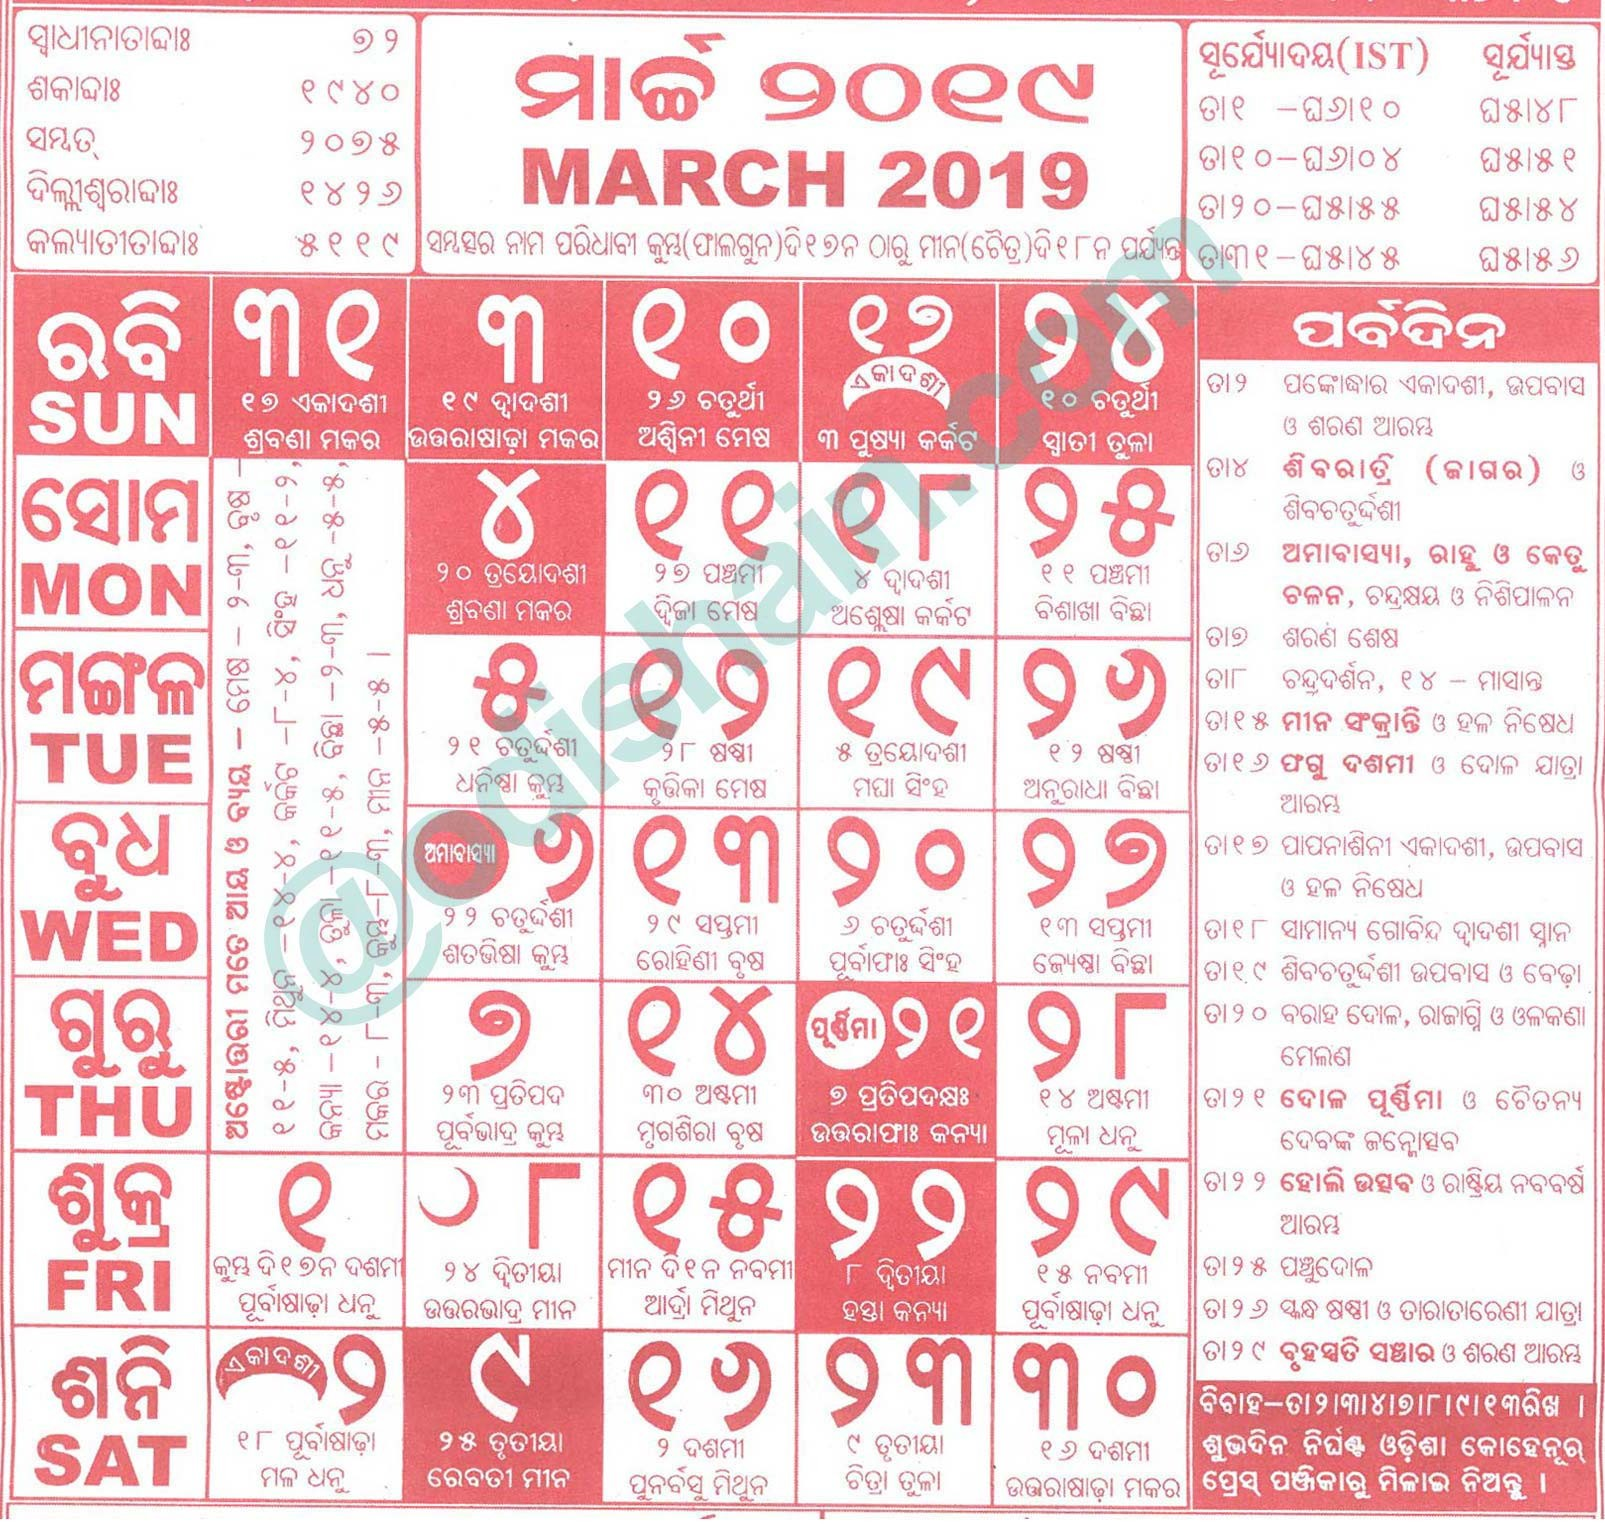 March Calendar 2019 Más Actual Odia Calendar 2019 with March Odishain Of March Calendar 2019 Más Recientes March 2019 Wall Calendar Colorful Sketch Horizontal Template Letter